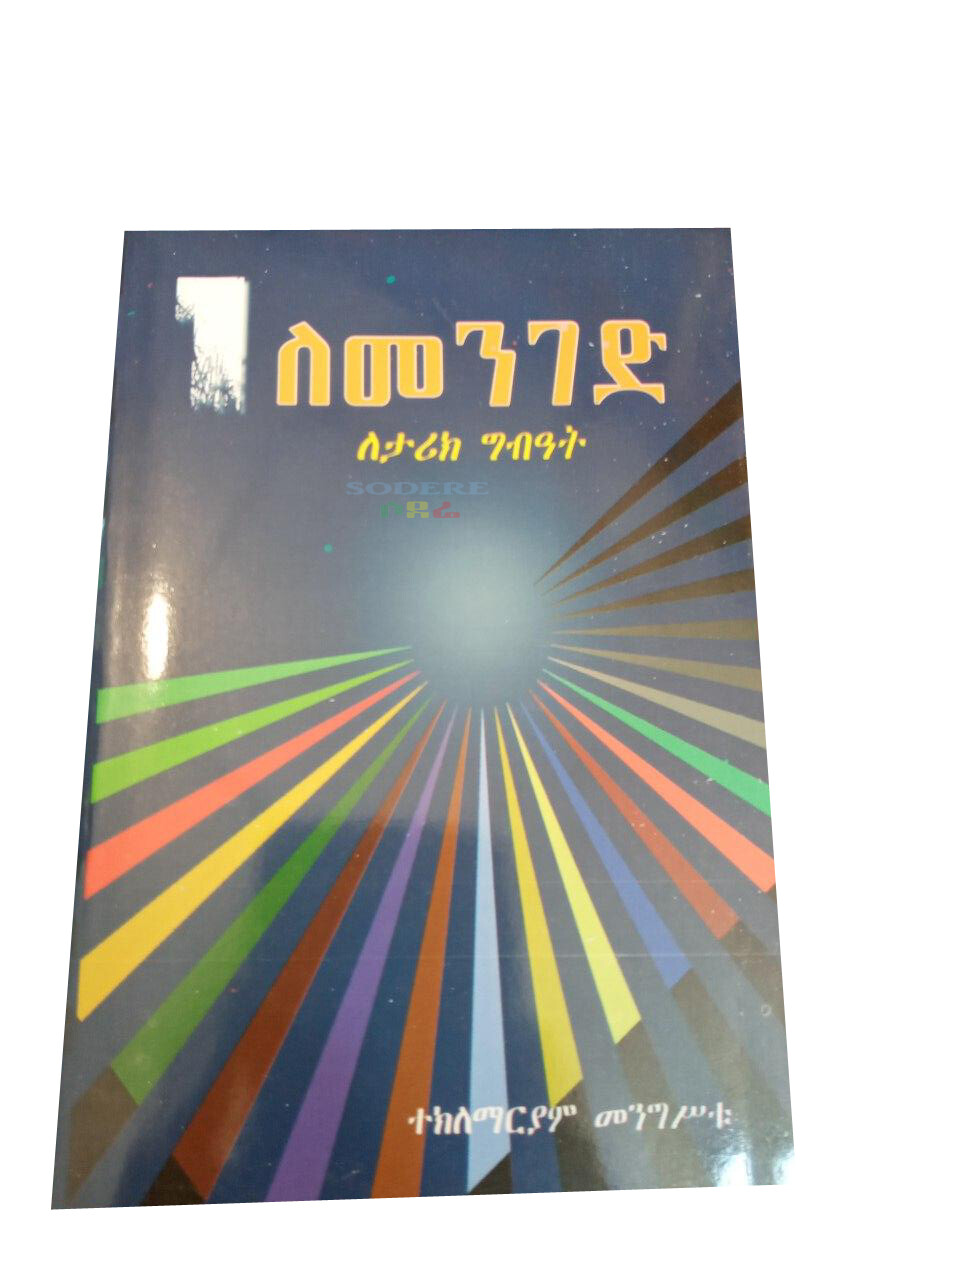 1 ለመንገድ And Lemenged By Tekelhaymanot Mengestu